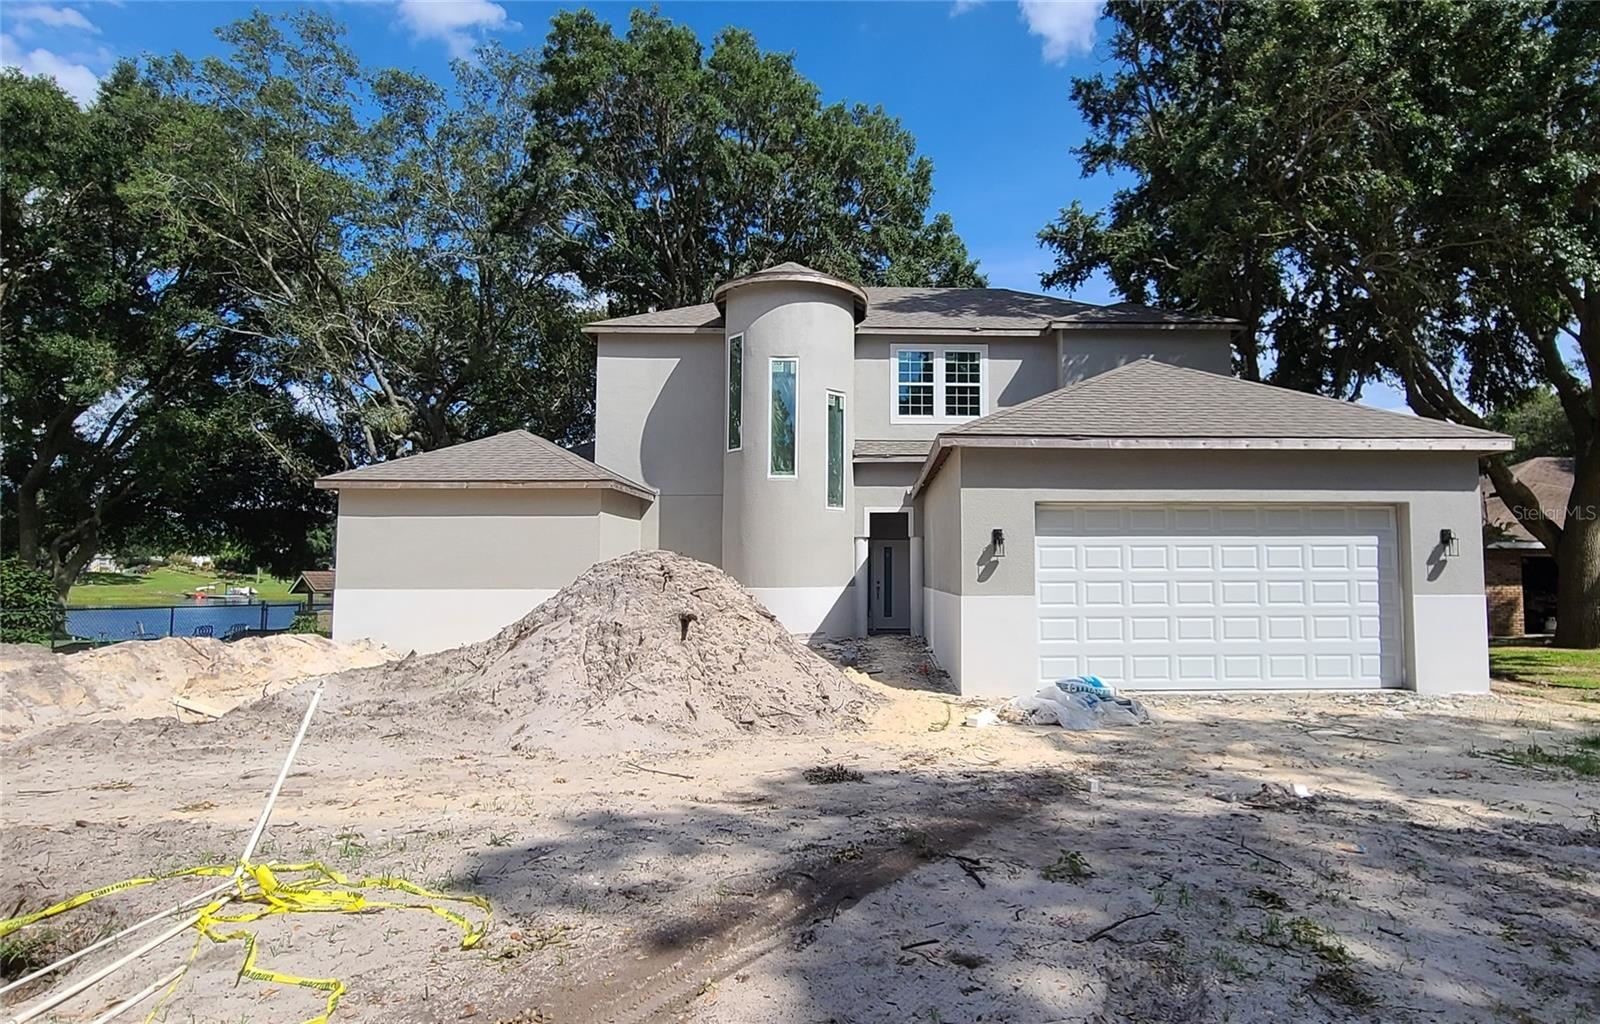 10790 POINCIANA DRIVE, Clermont, FL 34711 - #: O5898773